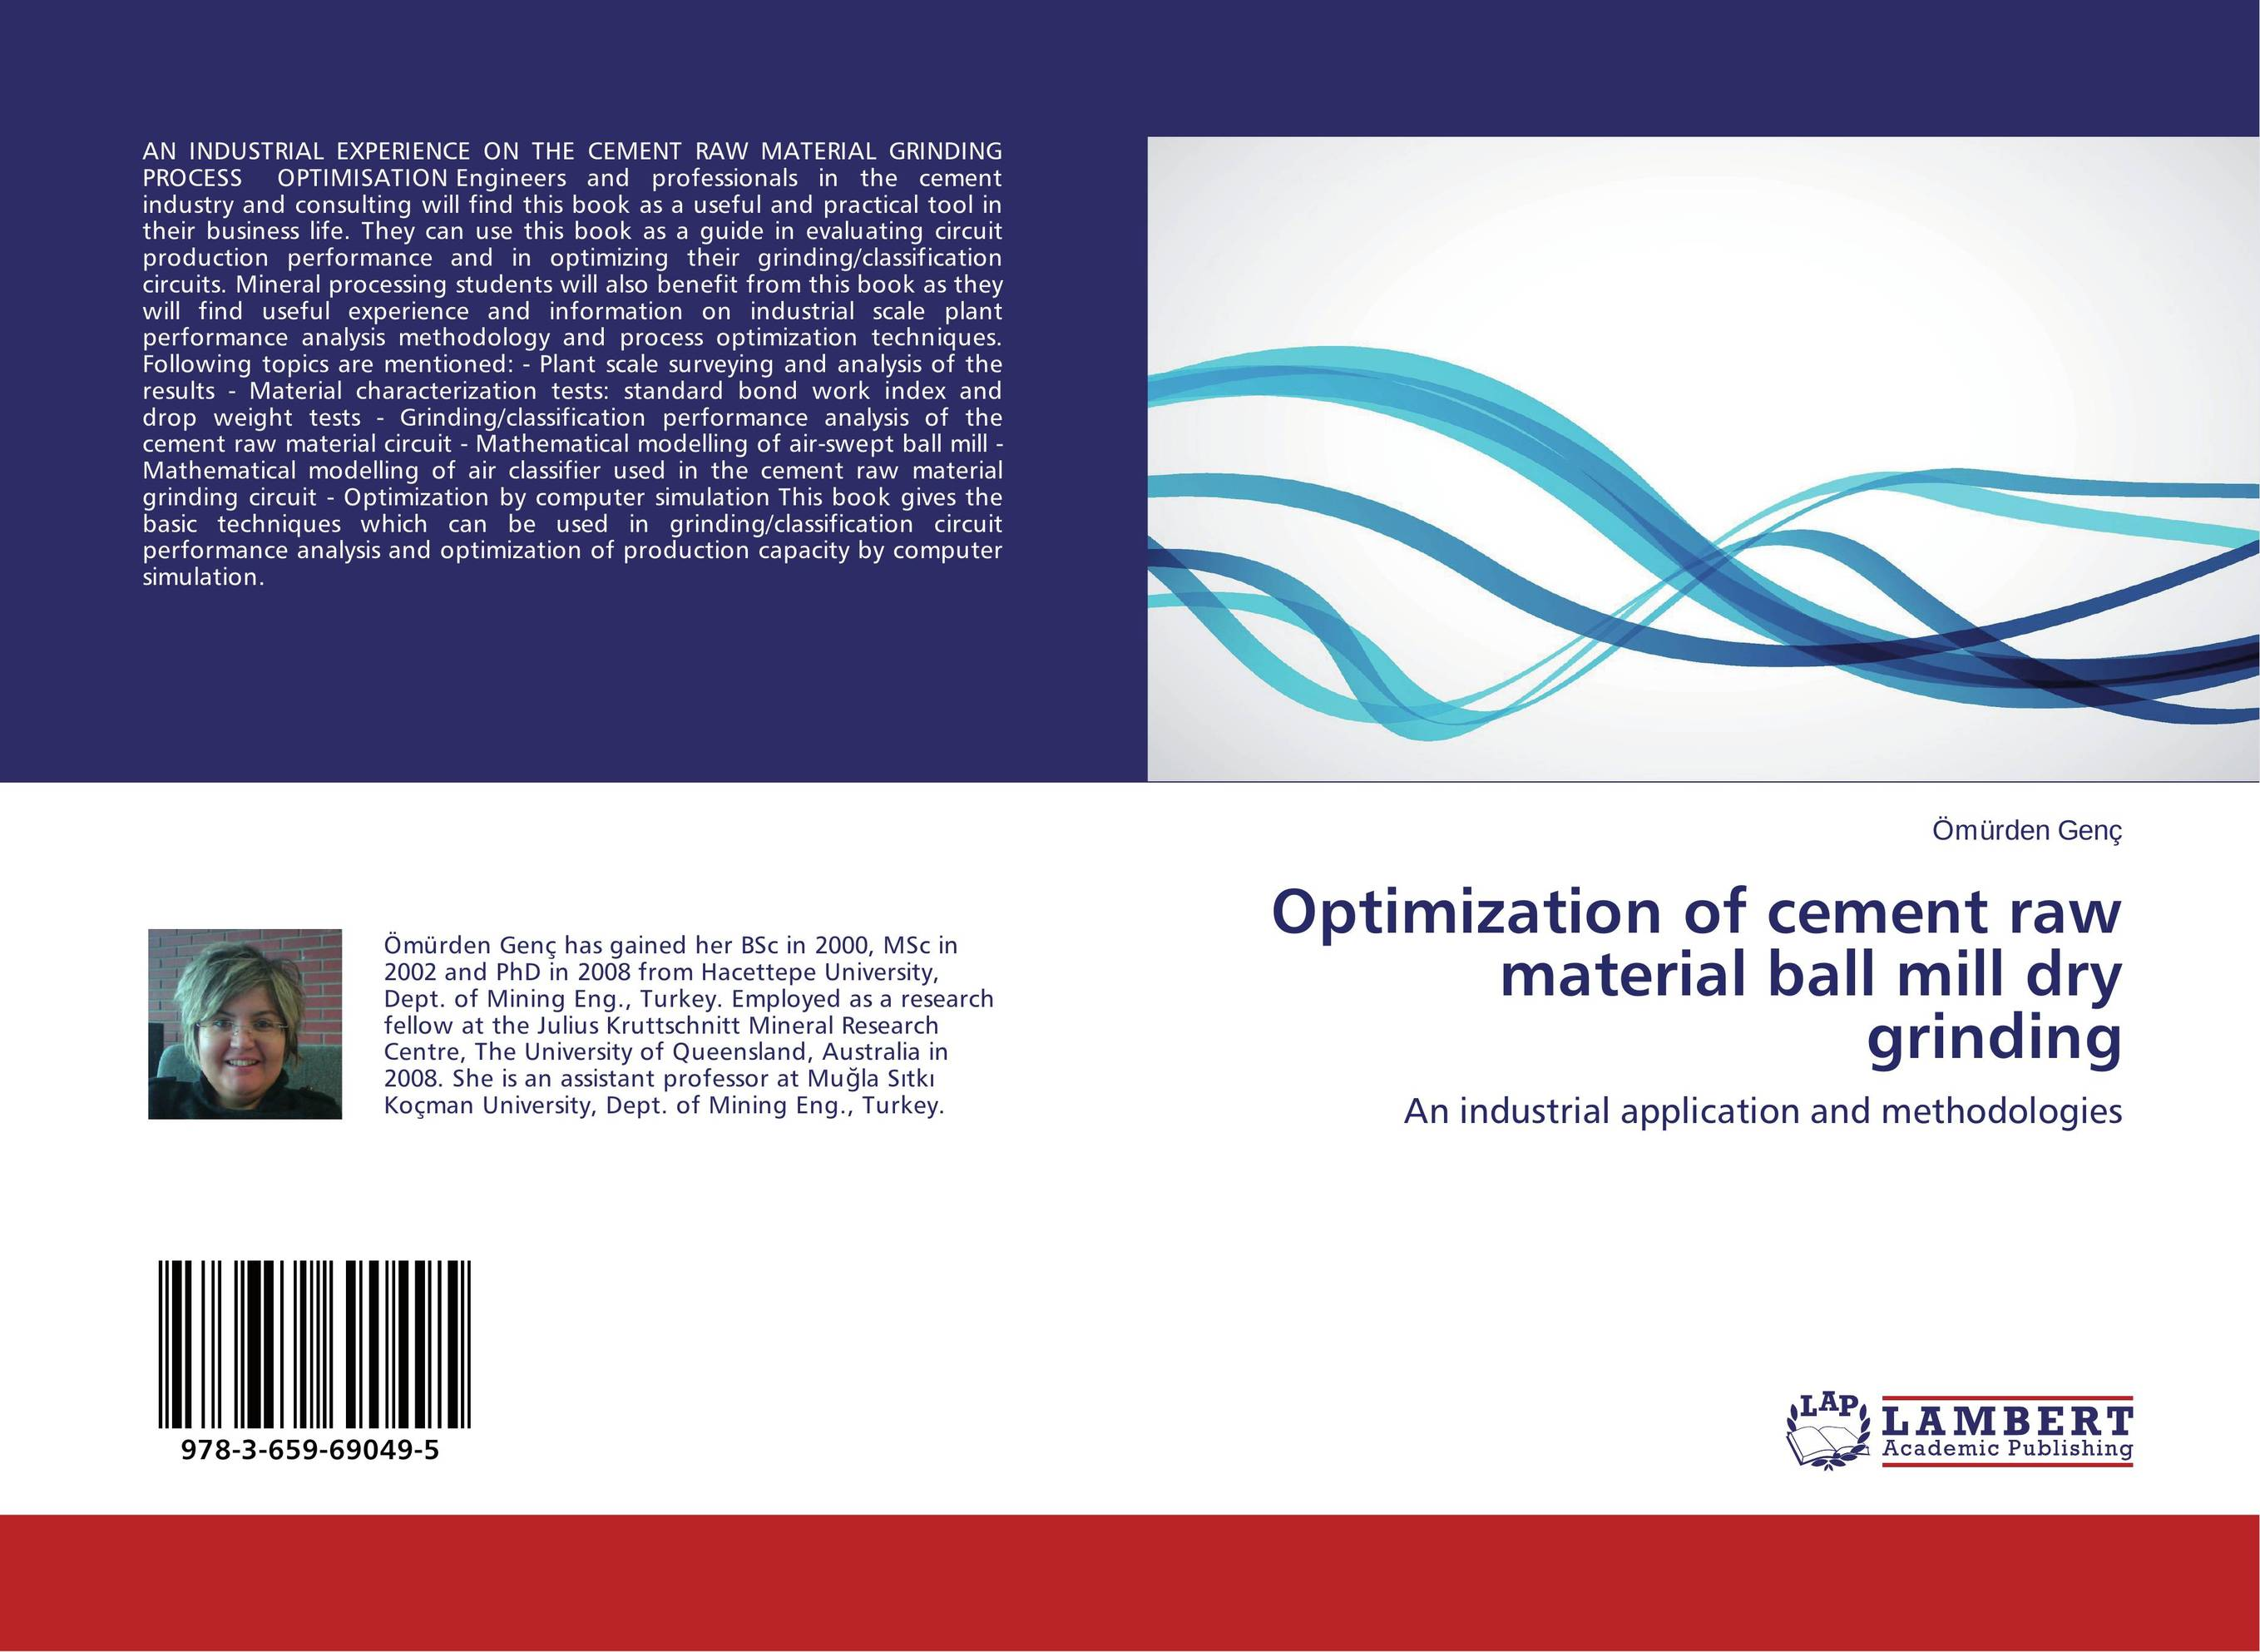 Optimization of cement raw material ball mill dry grinding optimization modeling and mathematical analysis